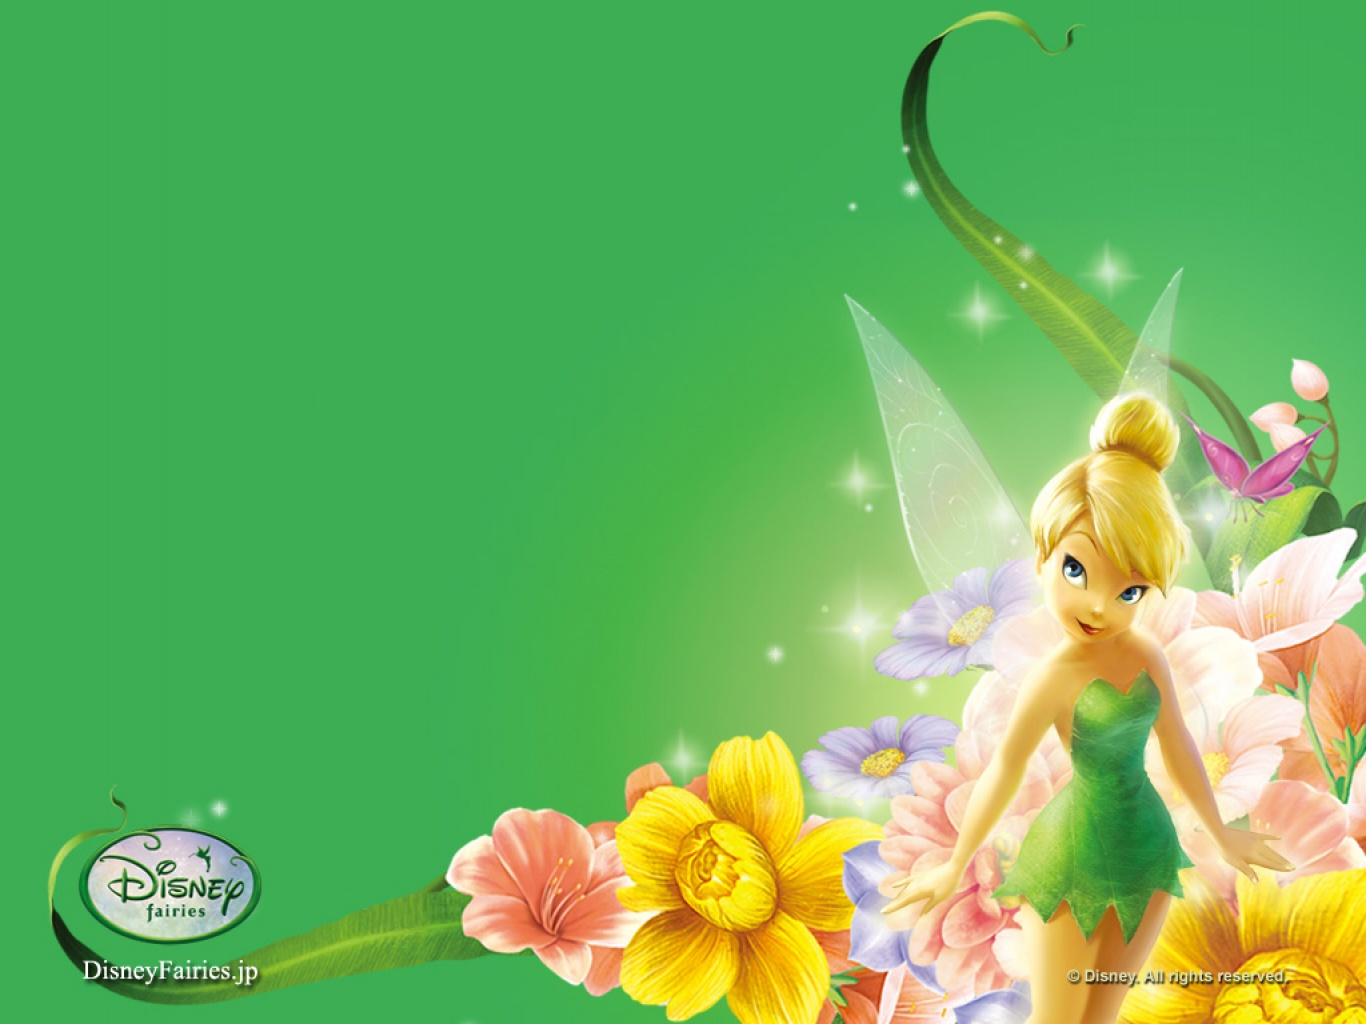 Wallpaper download Tinkerbell green background 1366x1024